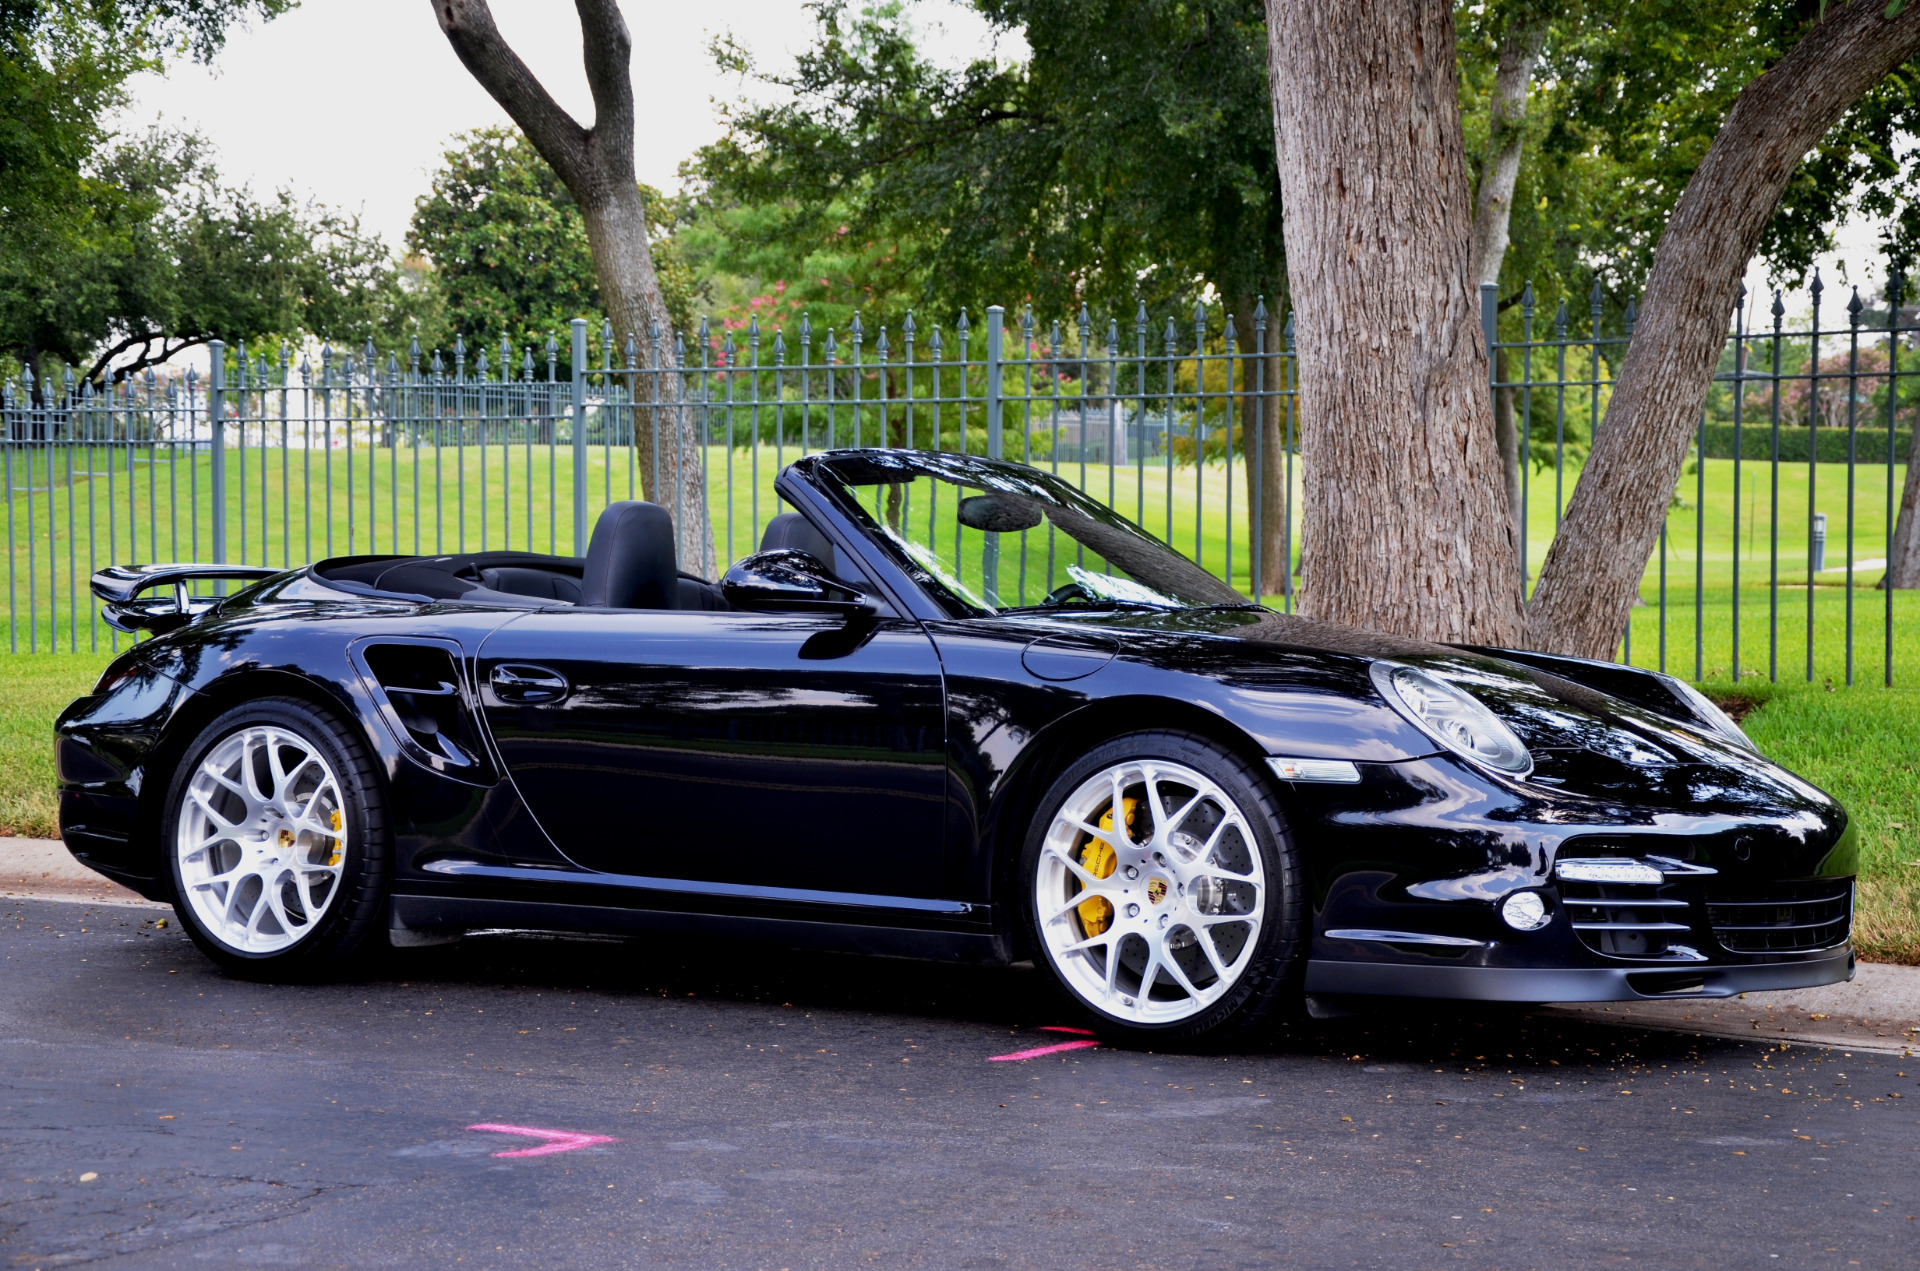 2011 porsche 911 turbo s stock 1170002 for sale near dallas tx tx porsche dealer. Black Bedroom Furniture Sets. Home Design Ideas